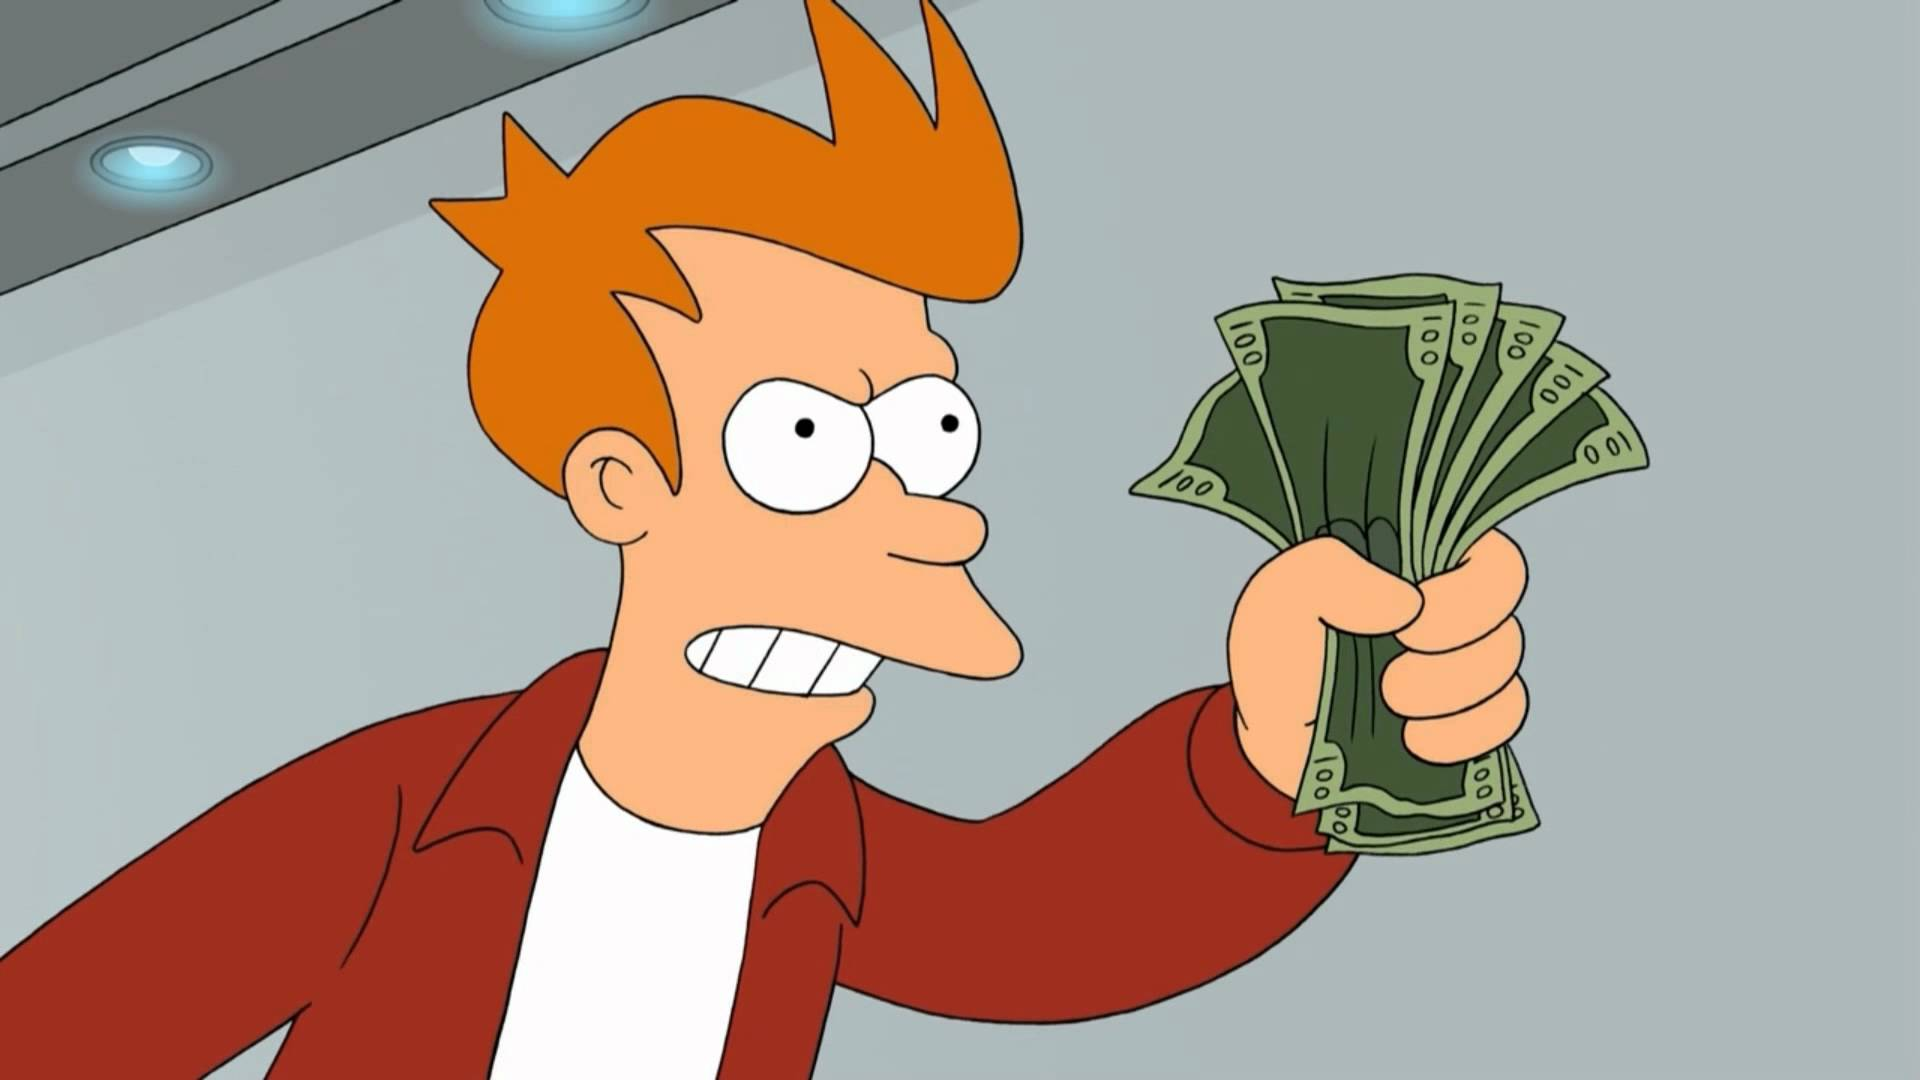 Fry holding money